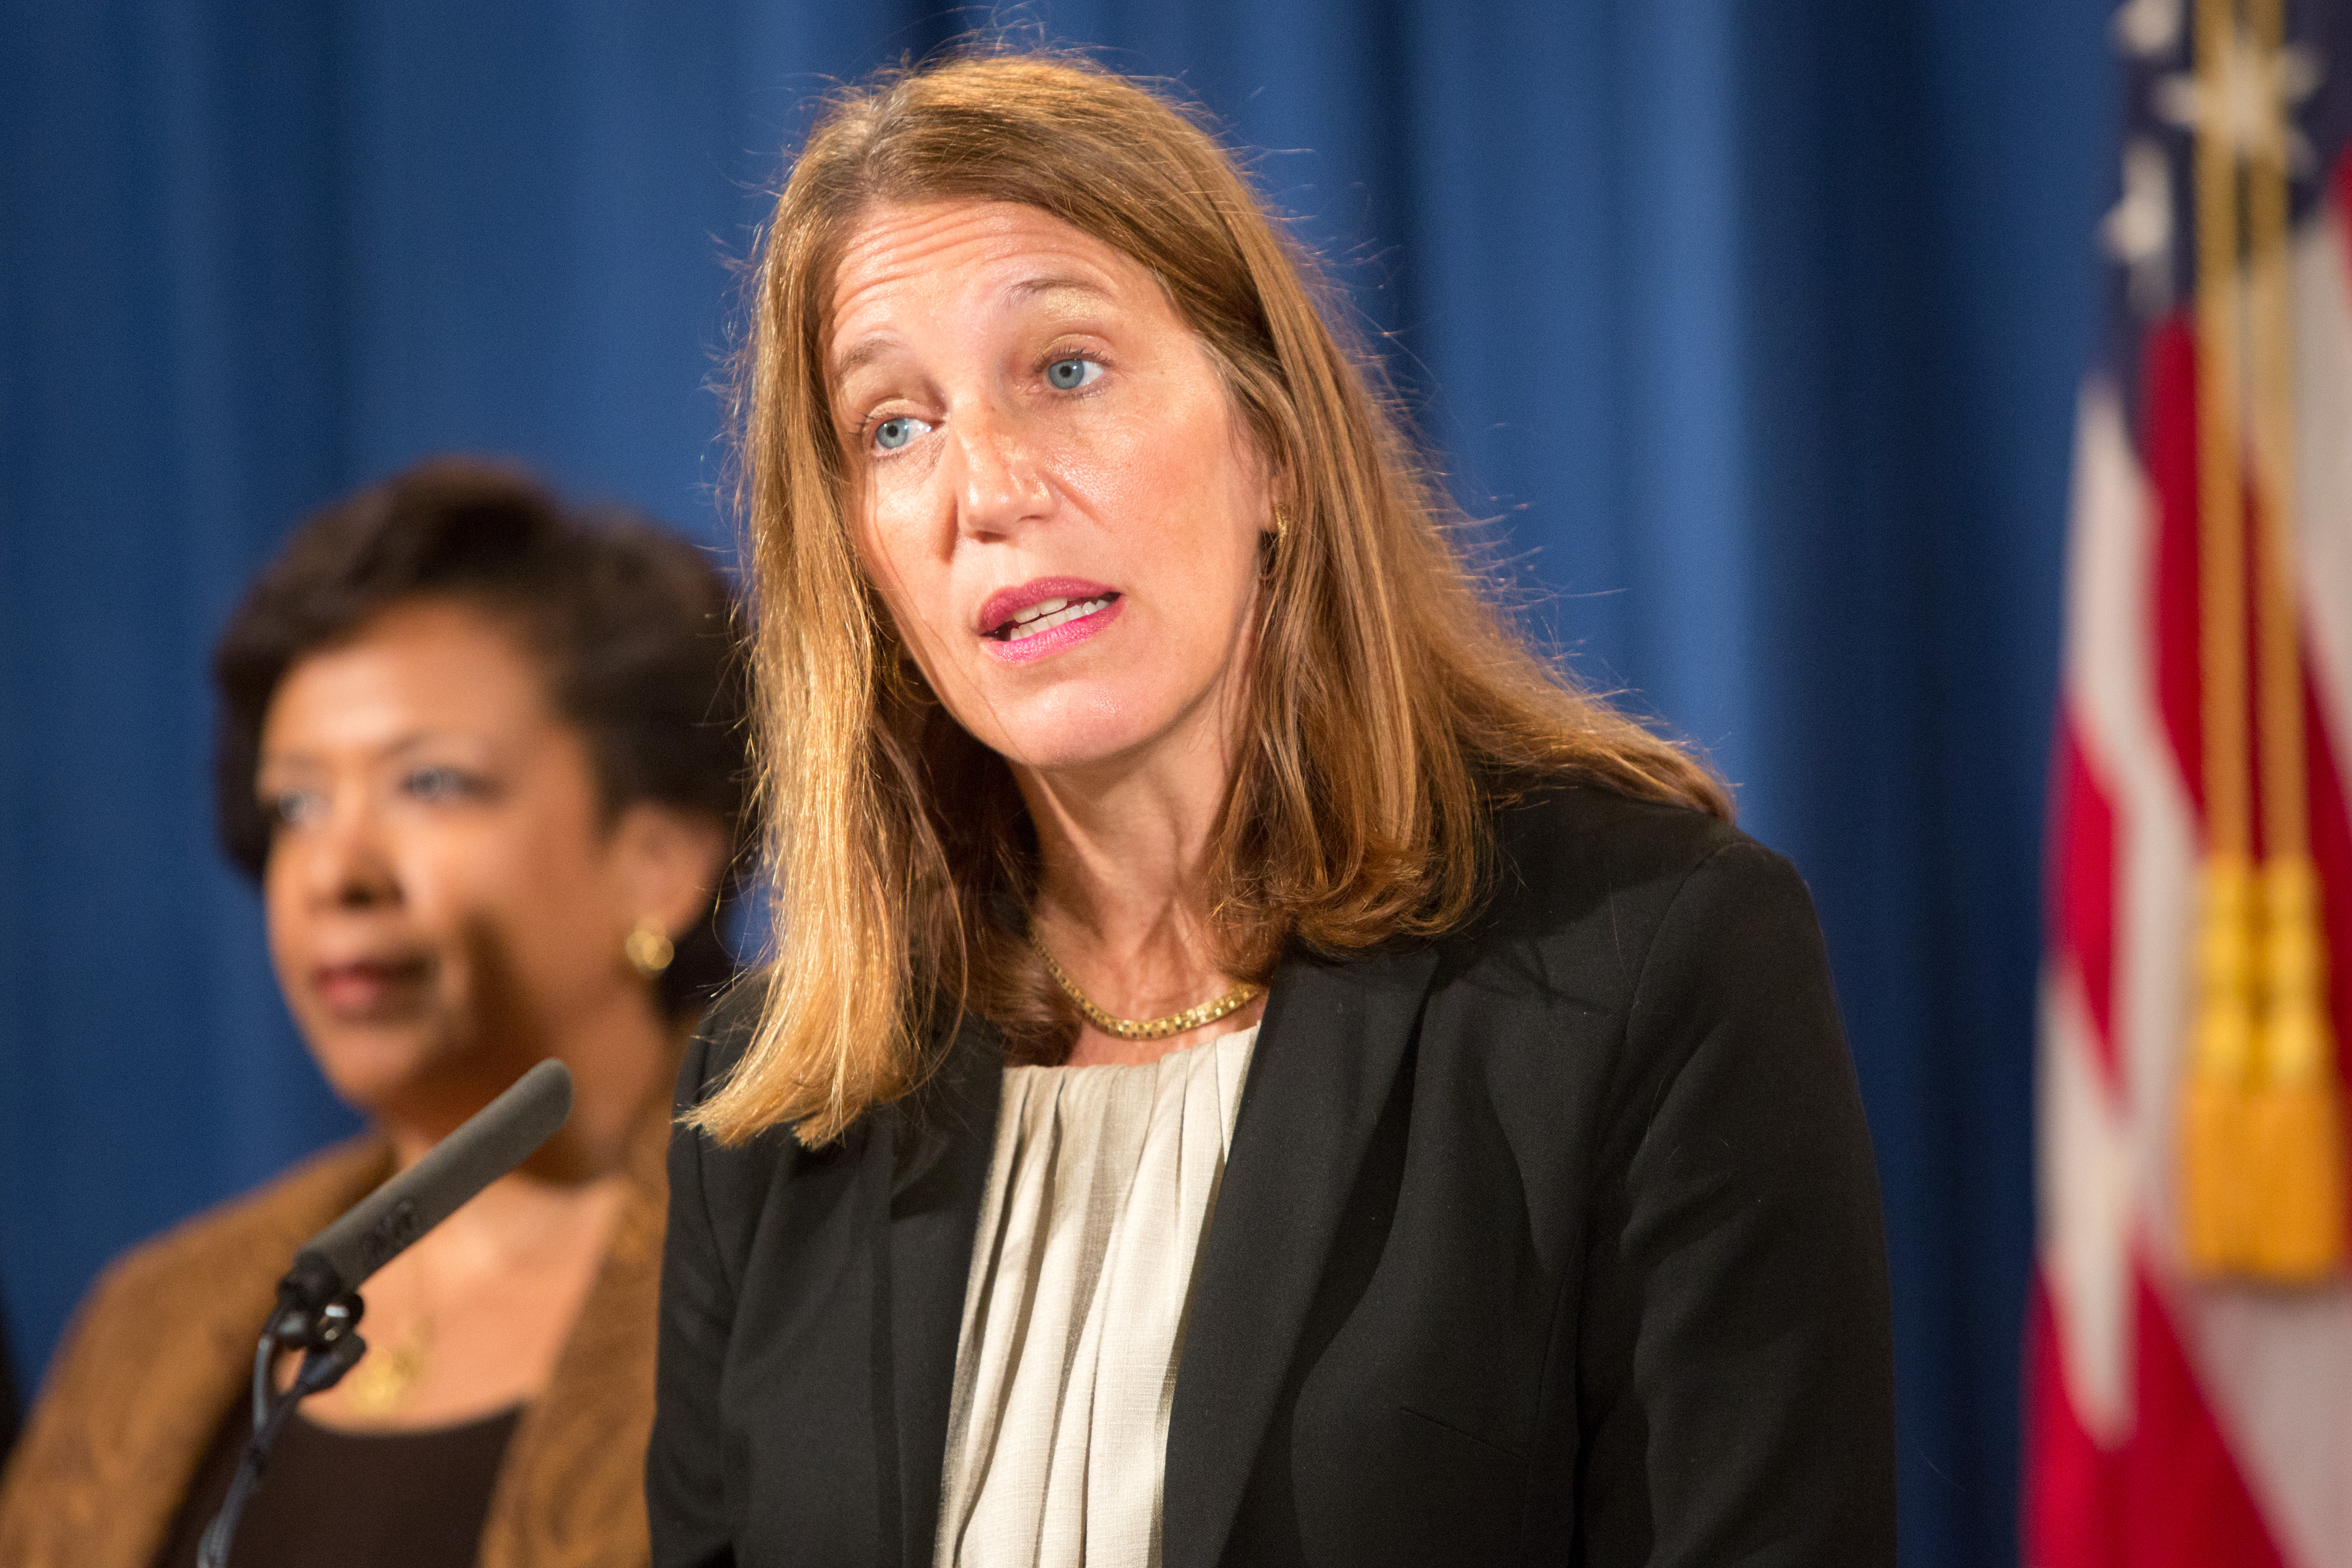 Department of Health and Human Services Secretary Sylvia Mathews Burwell speaks at a press conference on June 22, 2016 in Washington, DC.